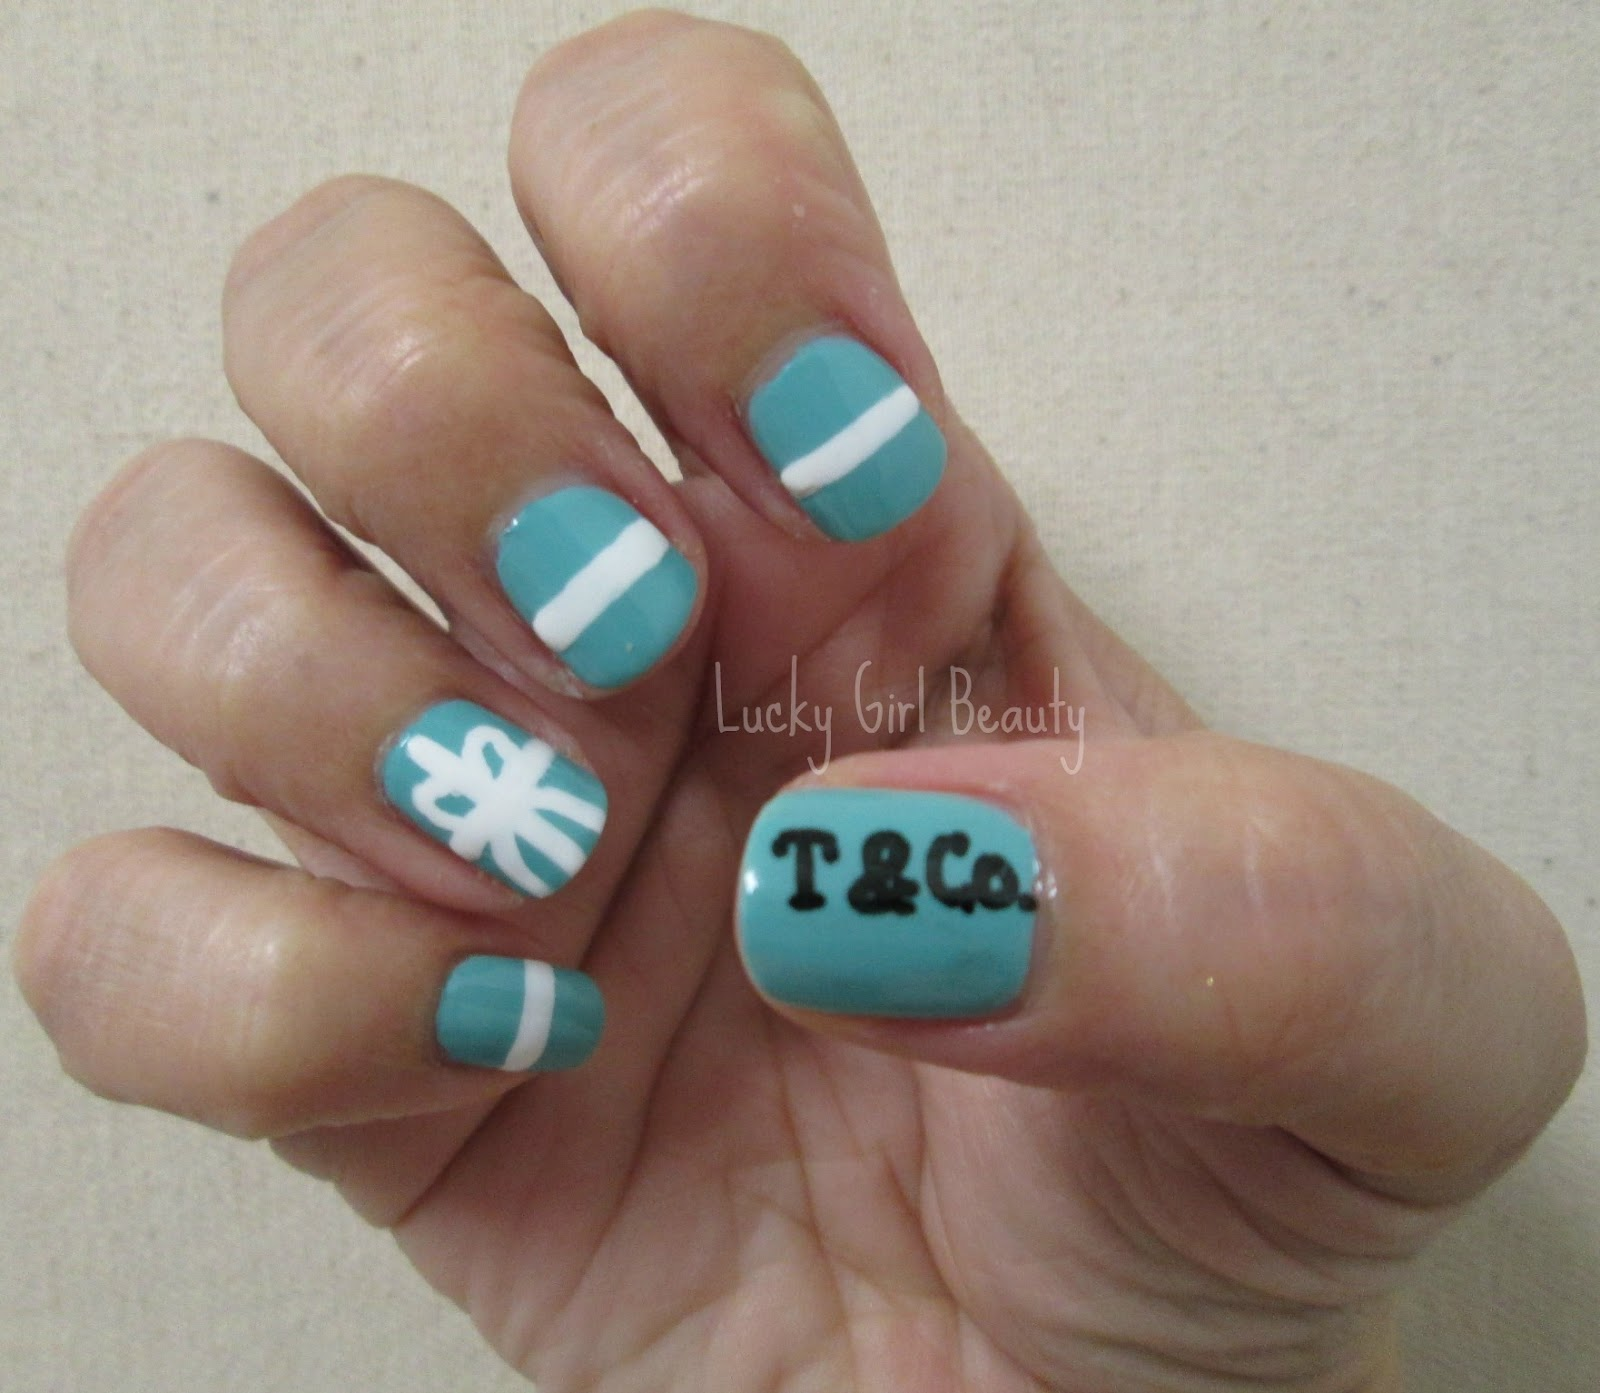 Lucky girl beauty tiffany inspired nails tiffany inspired nails prinsesfo Images